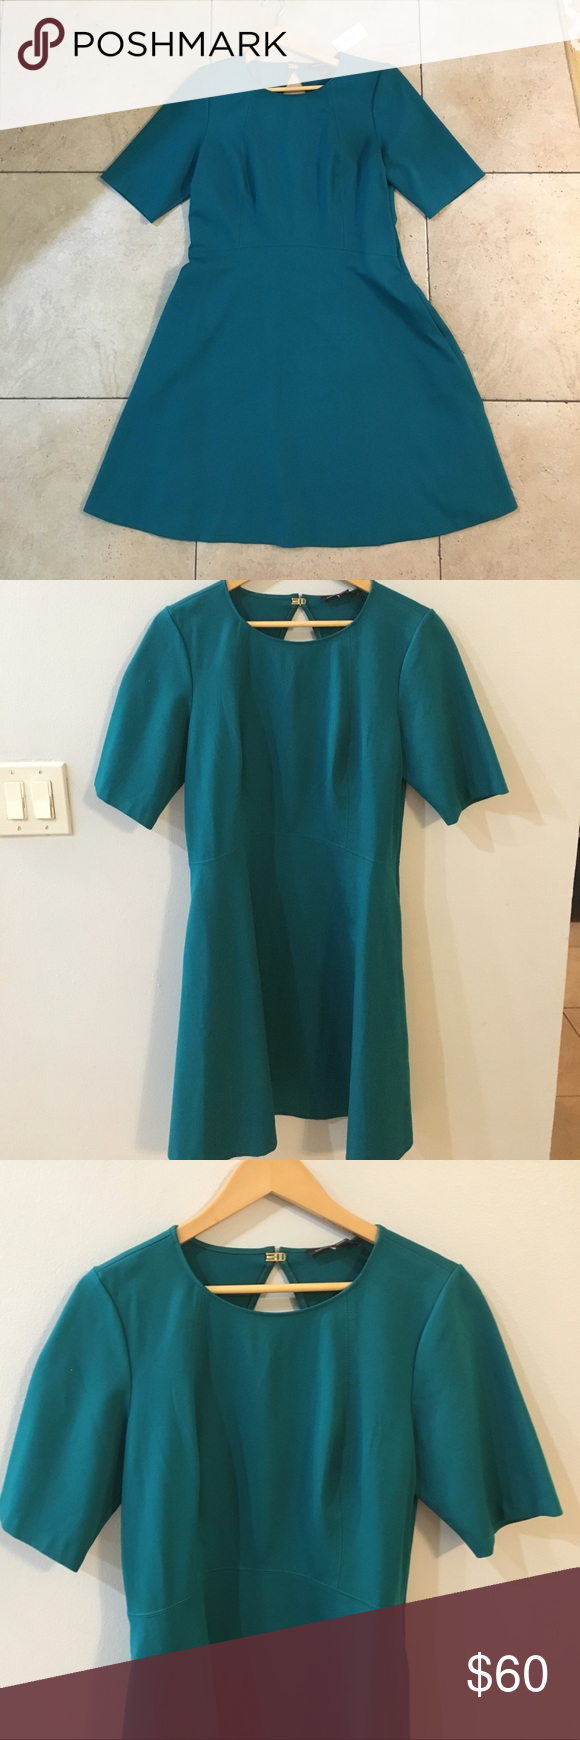 Green n gold dress  NWT Banana Republic Teal Fit n Flare Dress Size  NWT  Size